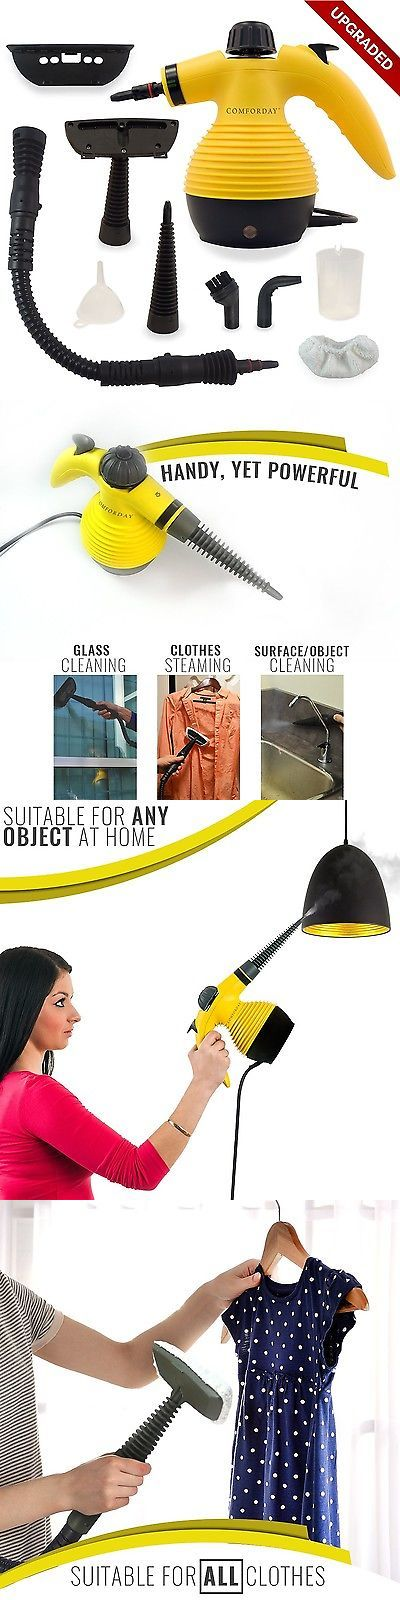 Wallpaper Tools and Accessories 180112: Handheld Multi Purpose Steam Cleaner Compact Design Ideal For Carpet Floor Ve... -> BUY IT NOW ONLY: $40.95 on eBay!